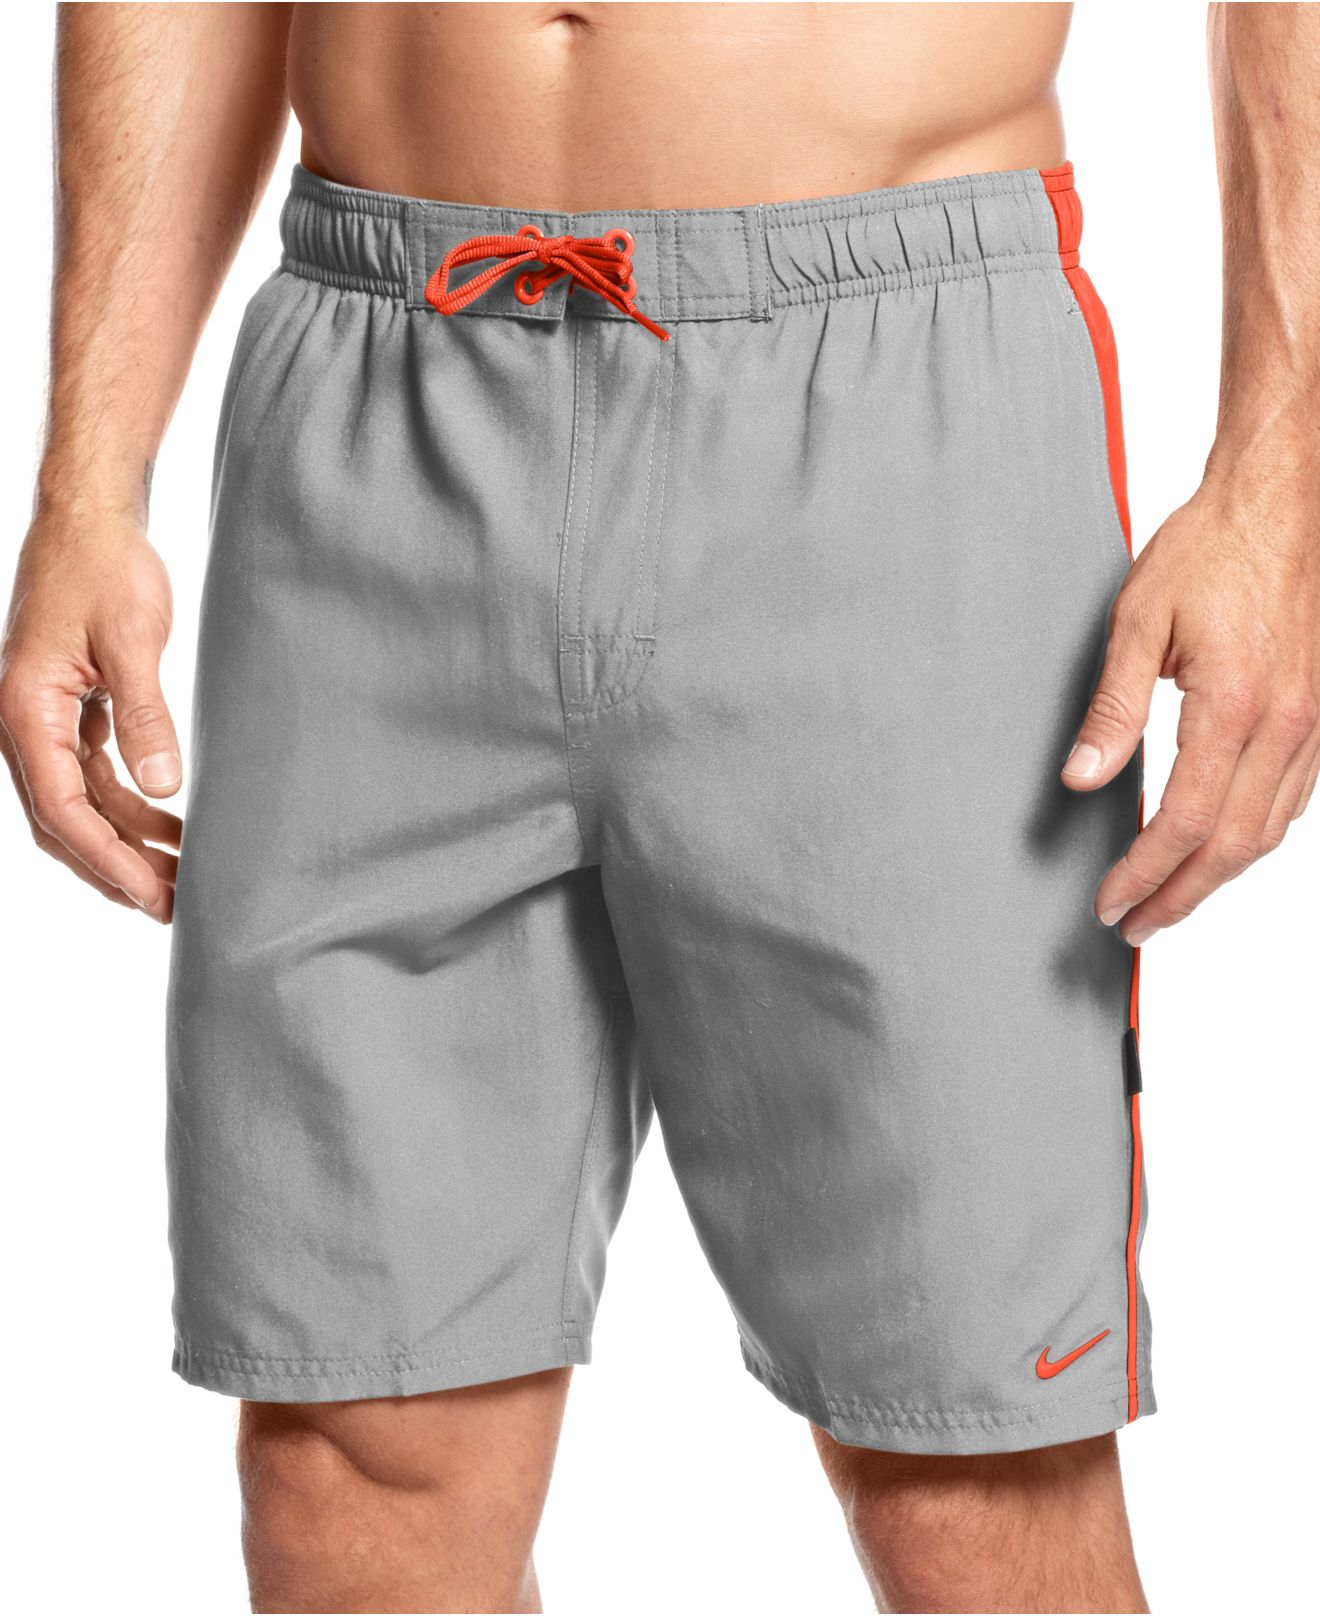 366fe18625 List of Synonyms and Antonyms of the Word: nike swim trunks